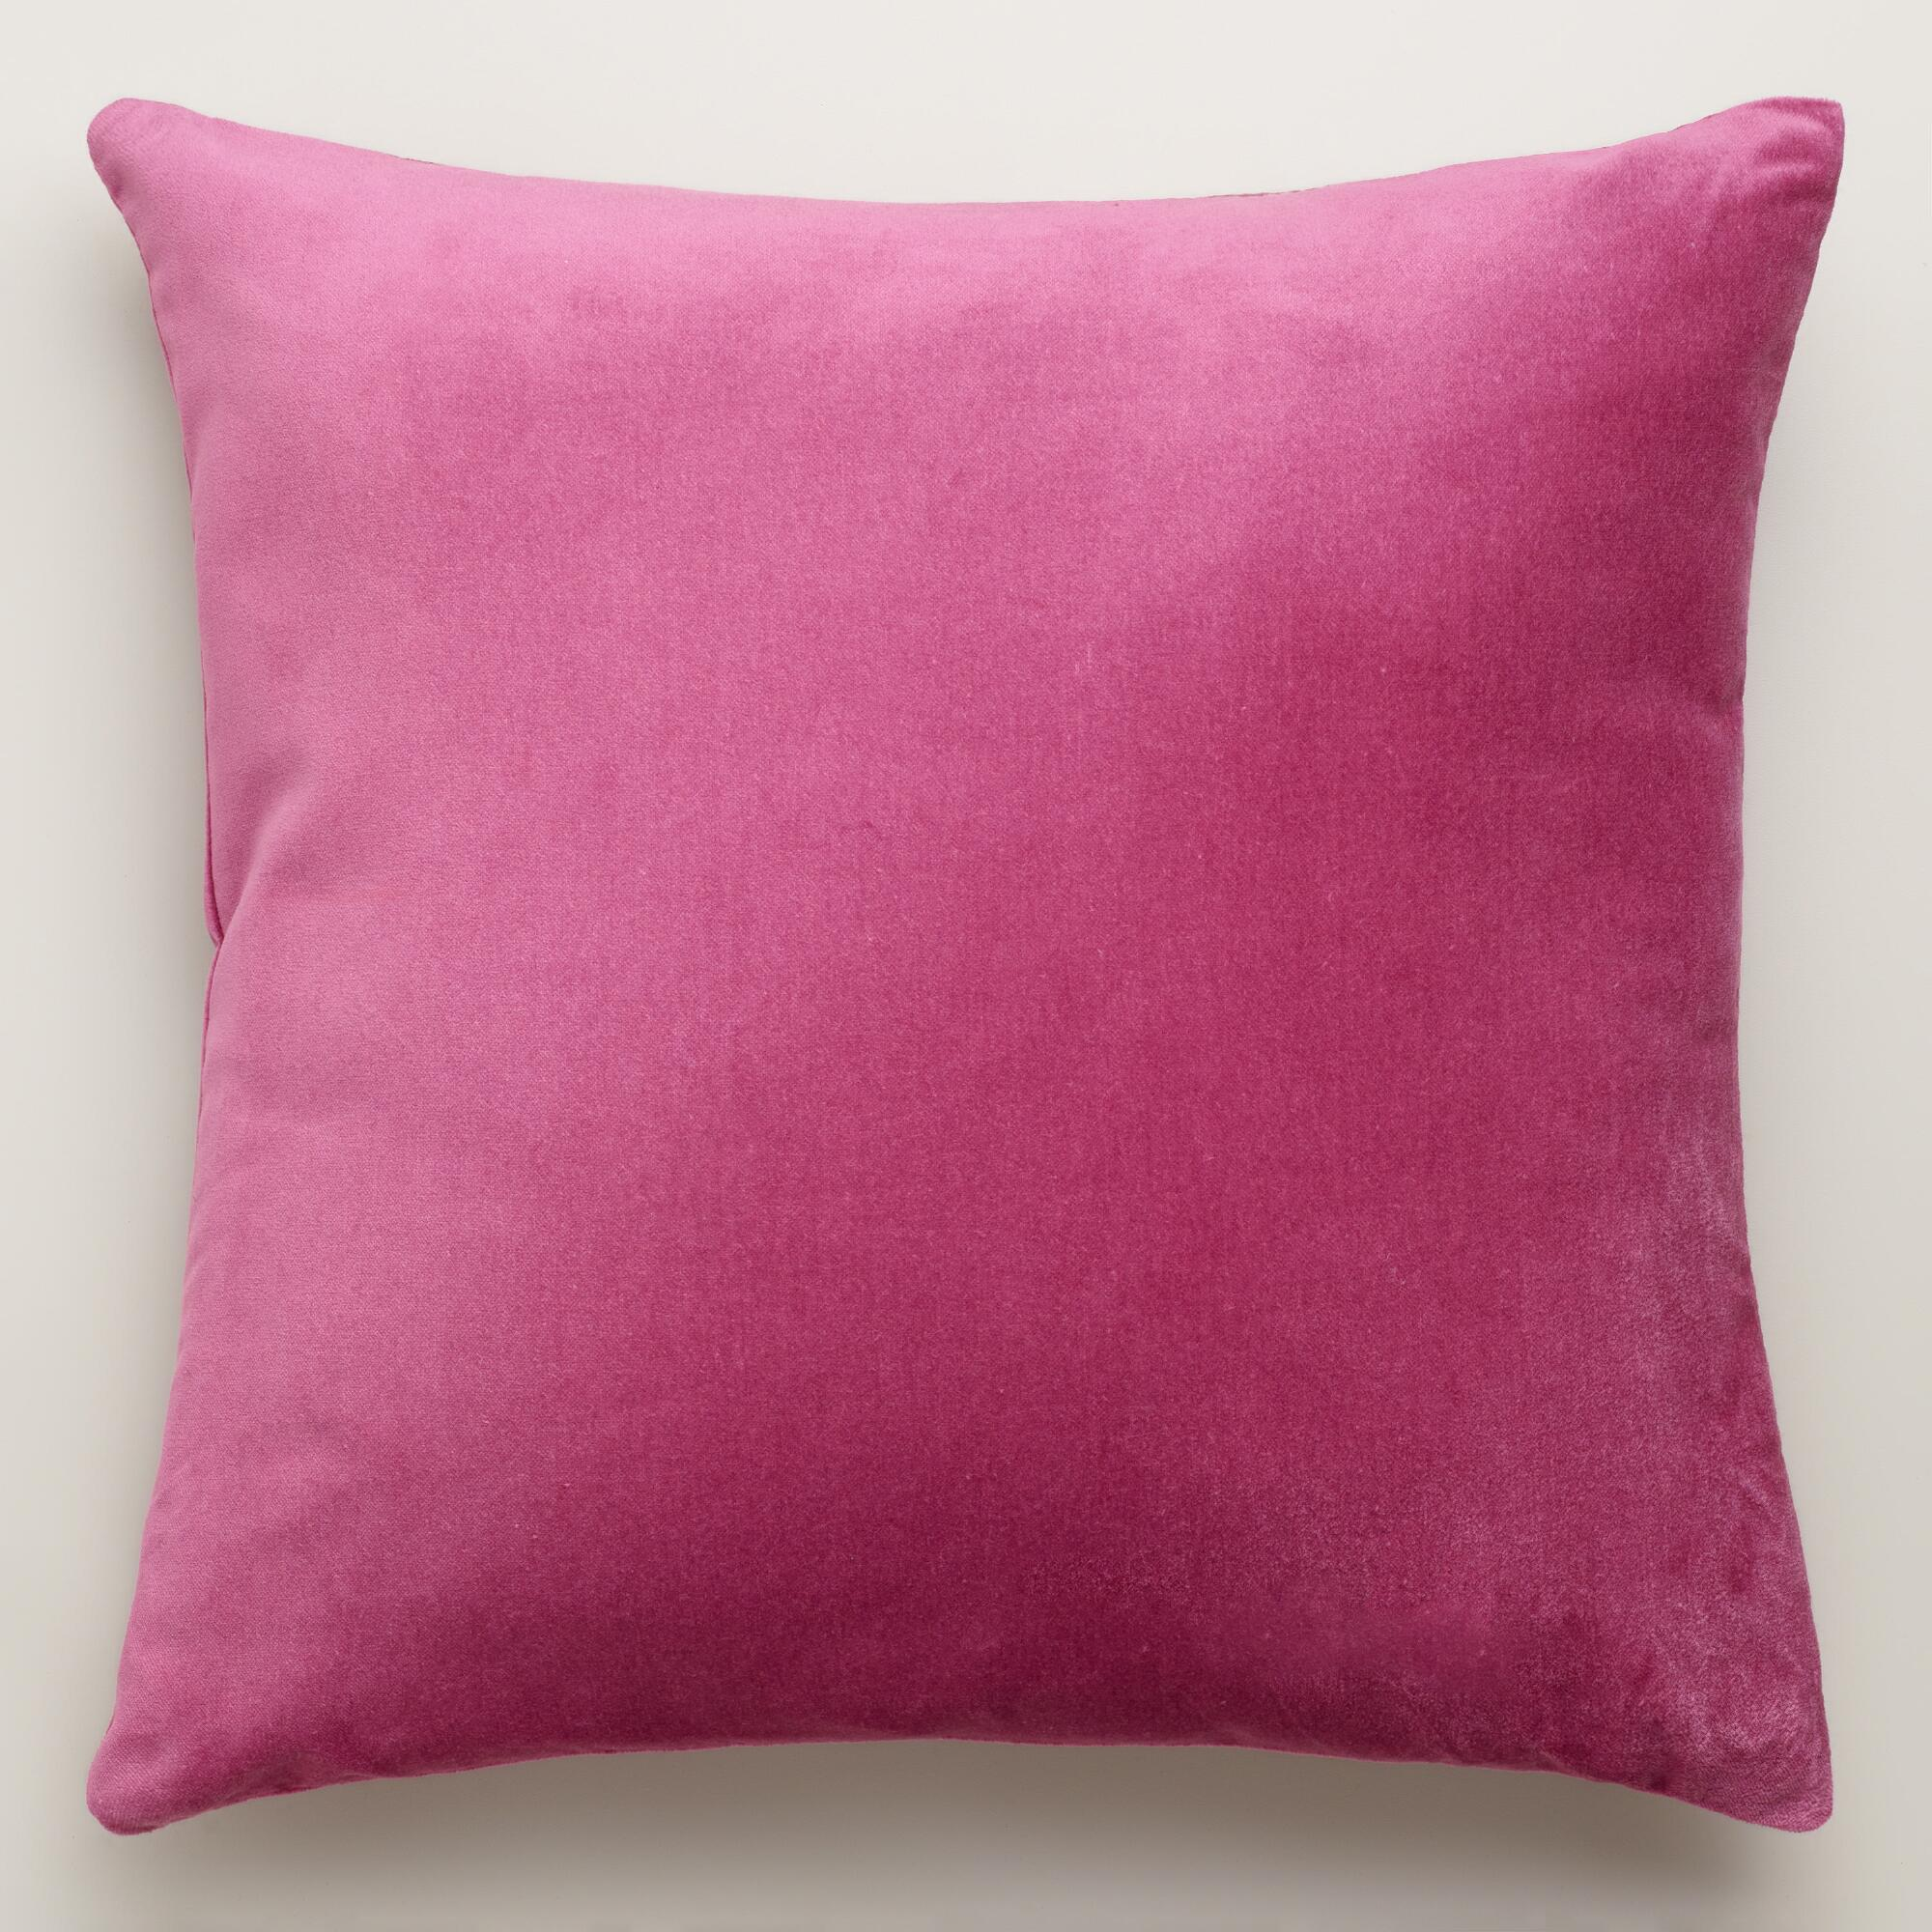 Throw Pillows Velvet : Rose Quartz Velvet Throw Pillows World Market